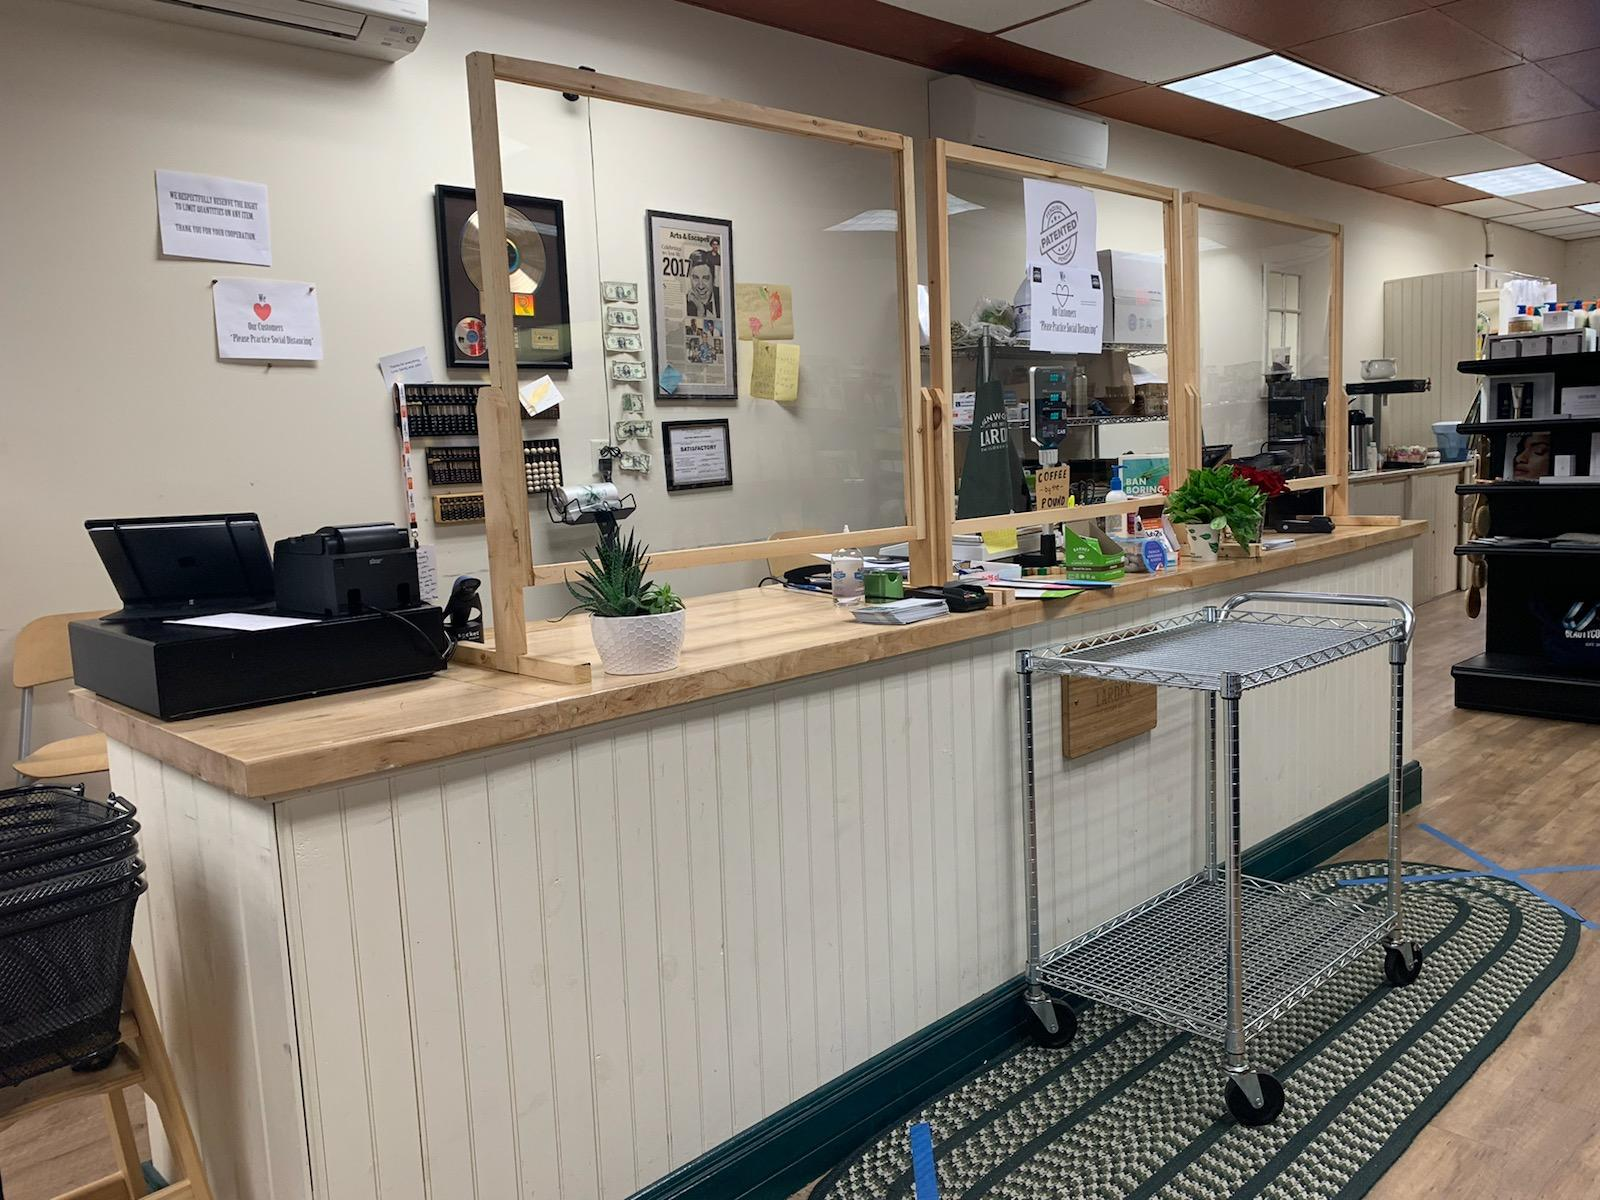 A photo of the check-out counter of a store. There are plexiglass partitions that rise up from the surface of the counter. Also on top of the counter are a cash register, several succulents, and office supplies.